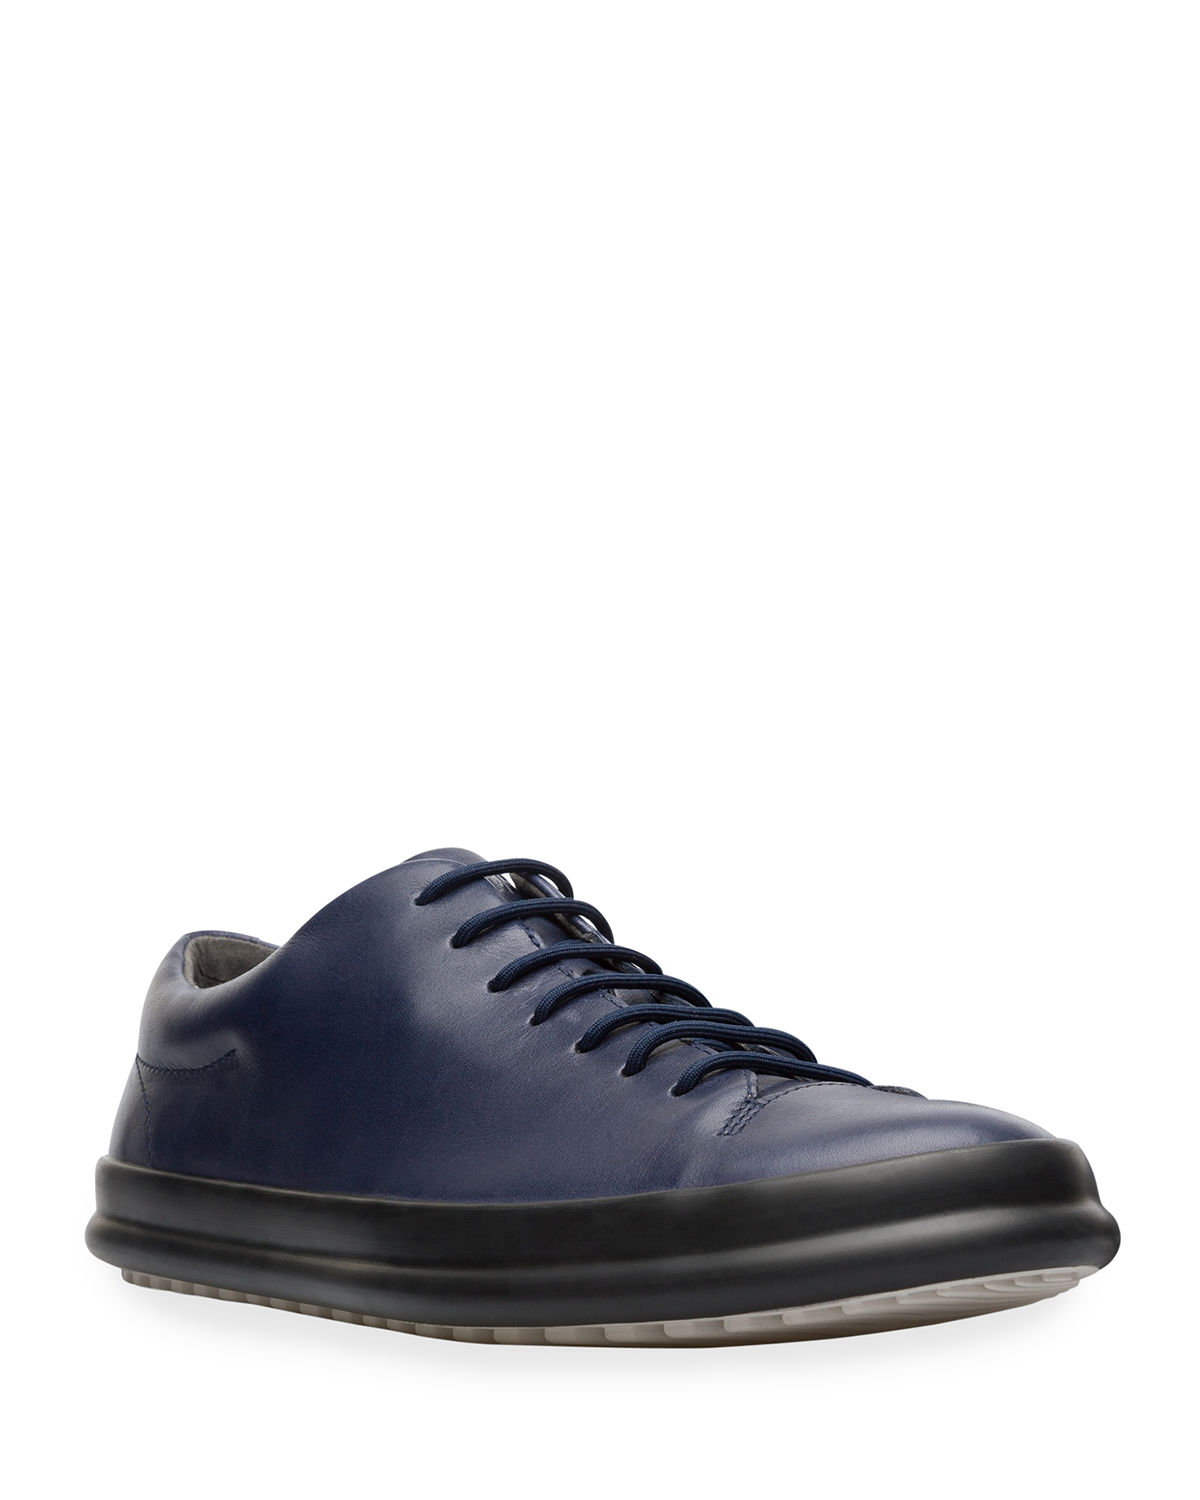 Men's Chasis Sport Leather Low-Top Sneakers